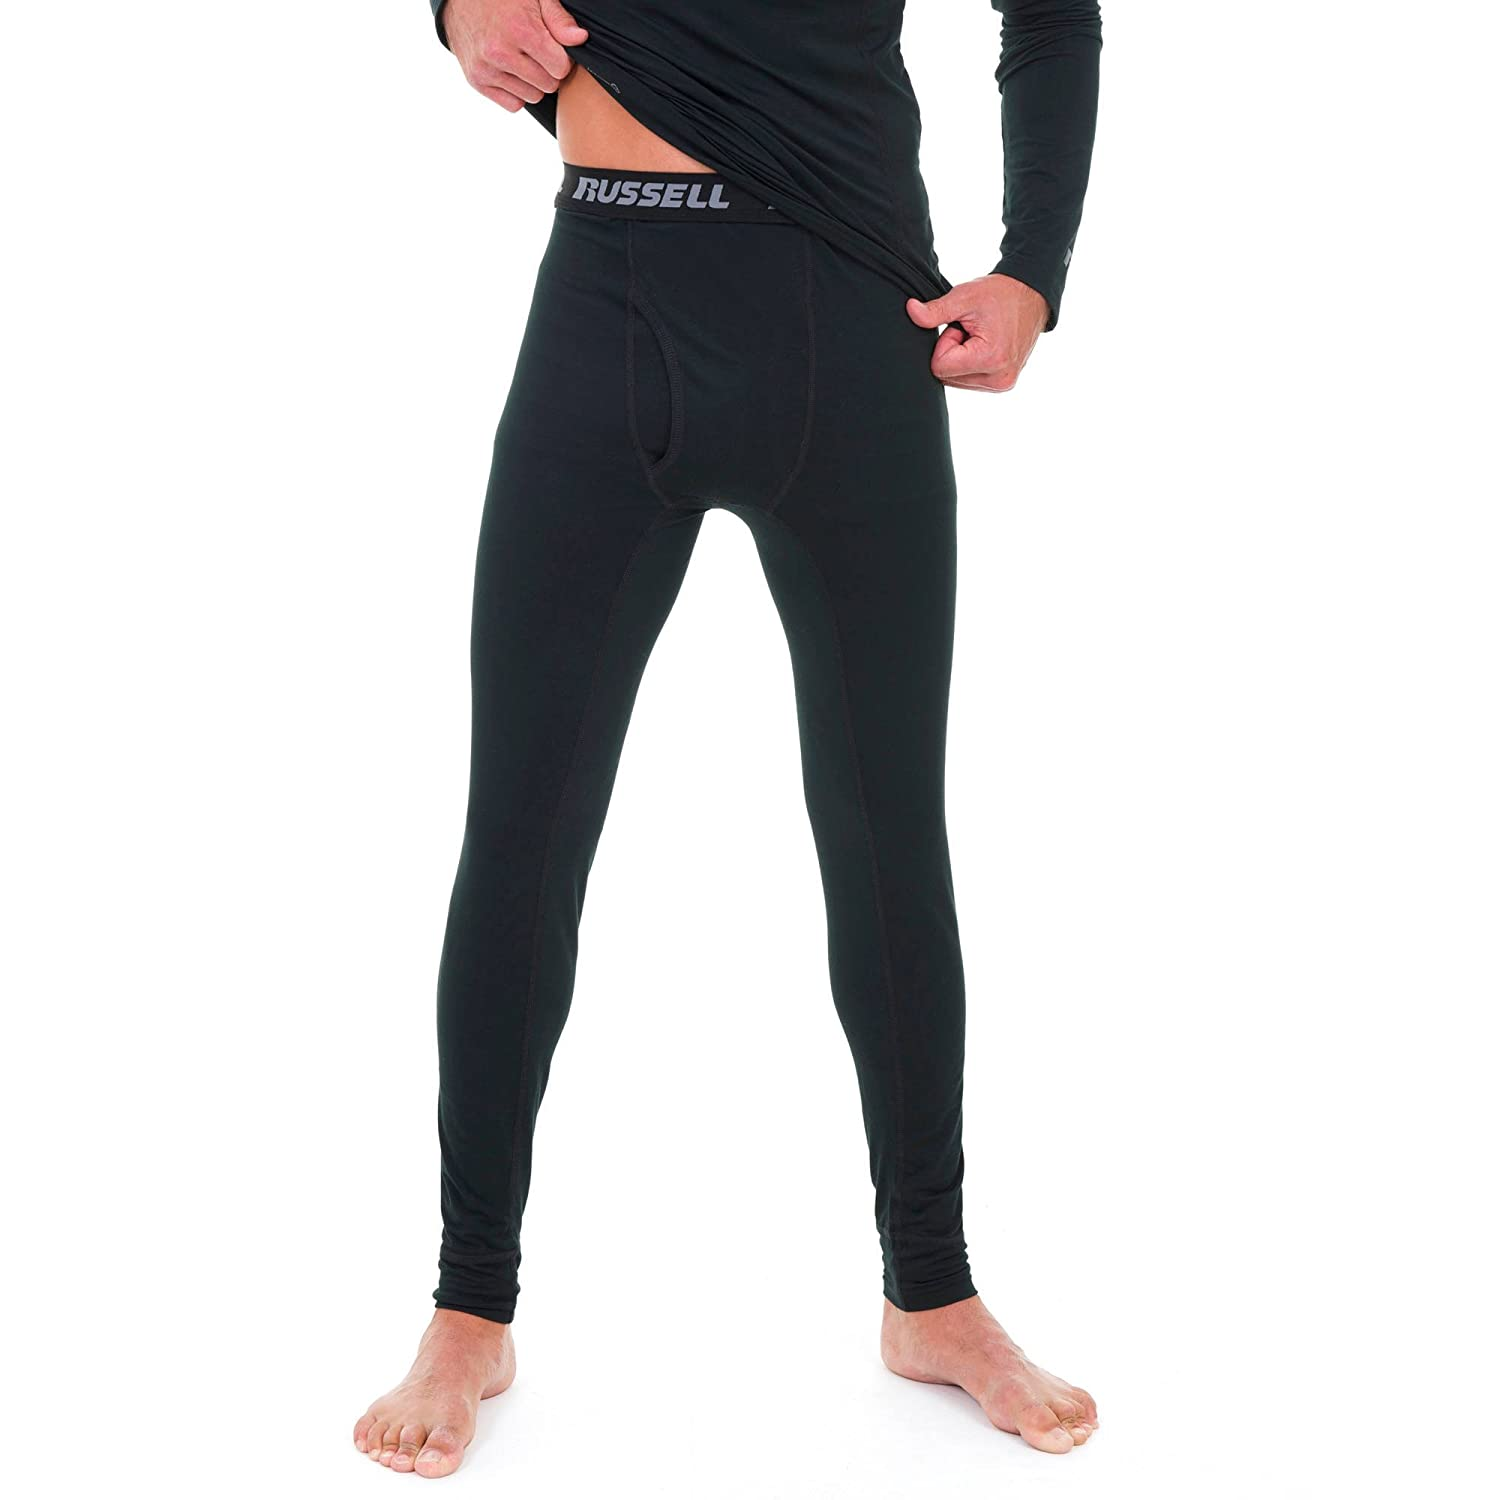 Russell Men's Performance Active Baselayer Thermal Pant / Bottom